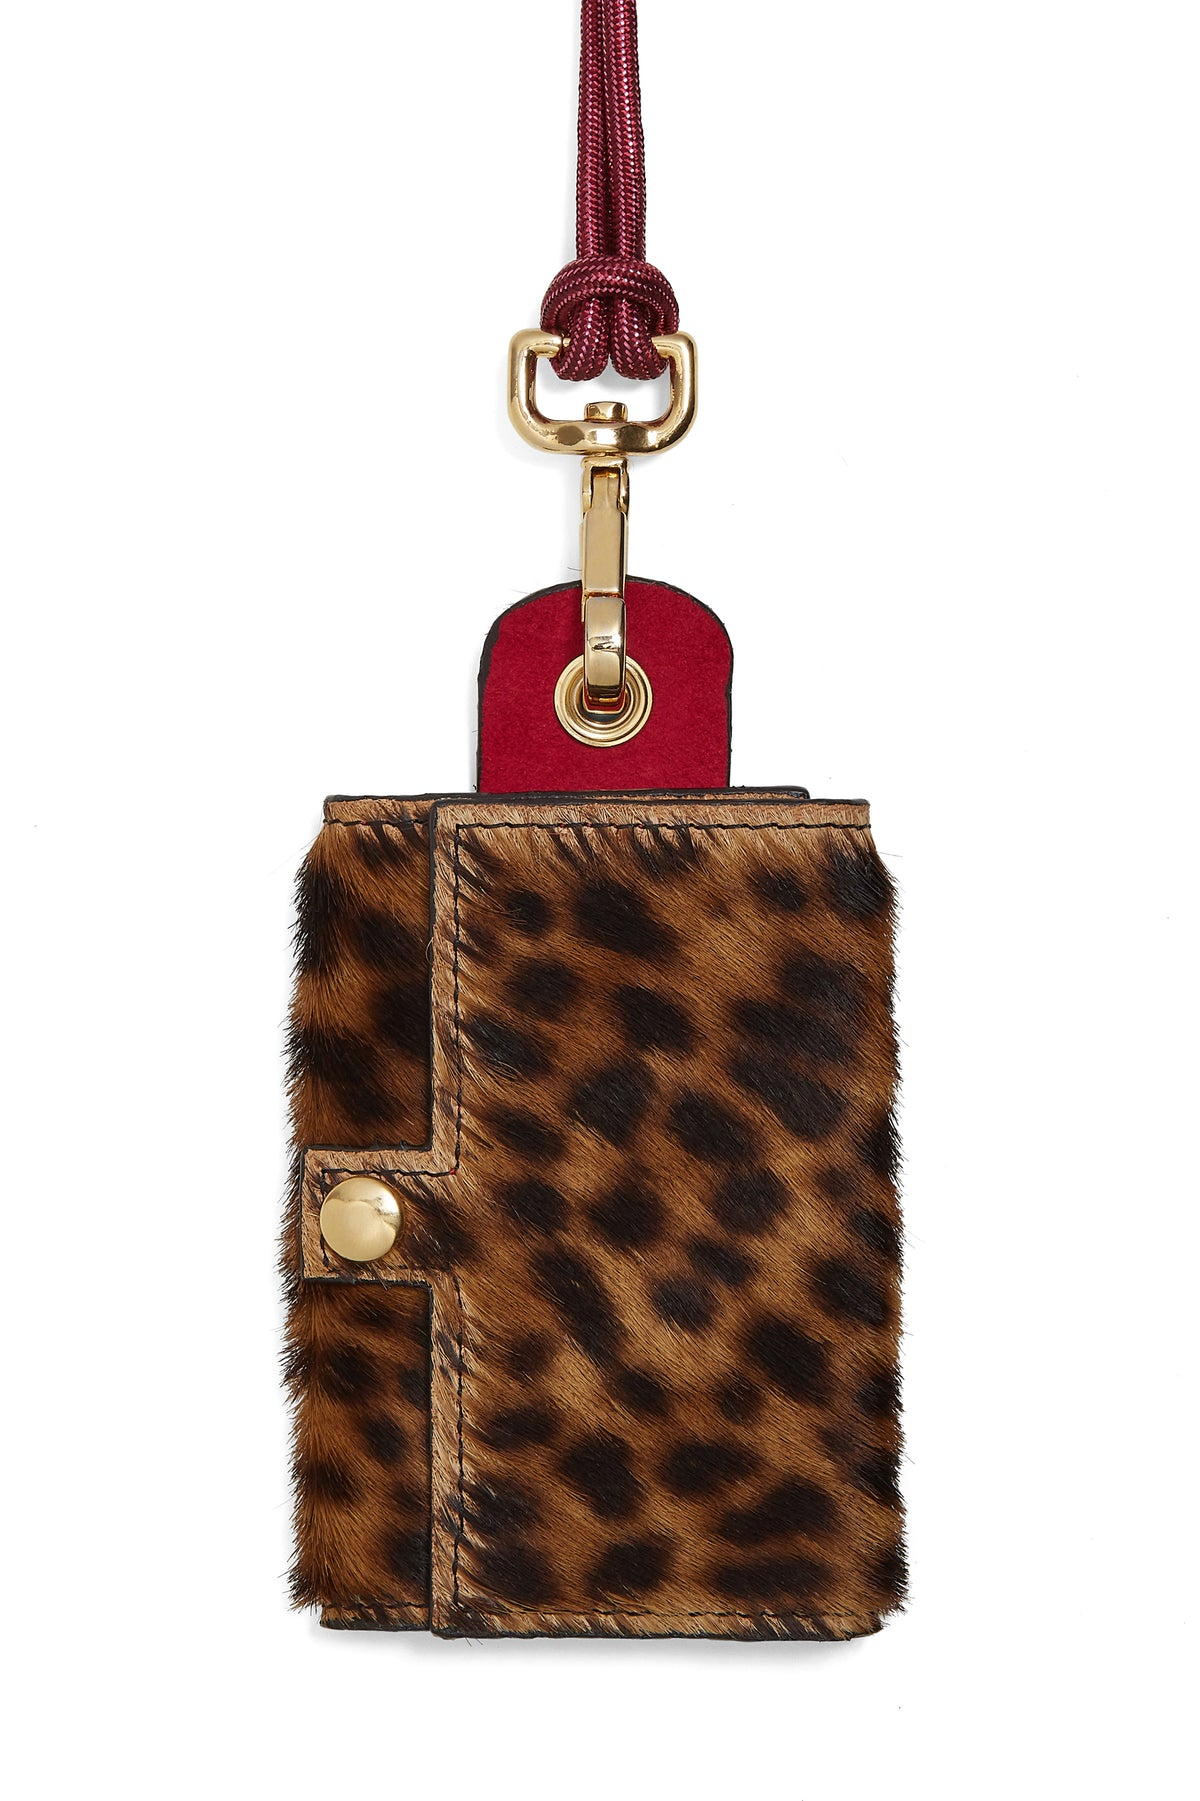 The Minis - 6 Key Holder in Leopard leather